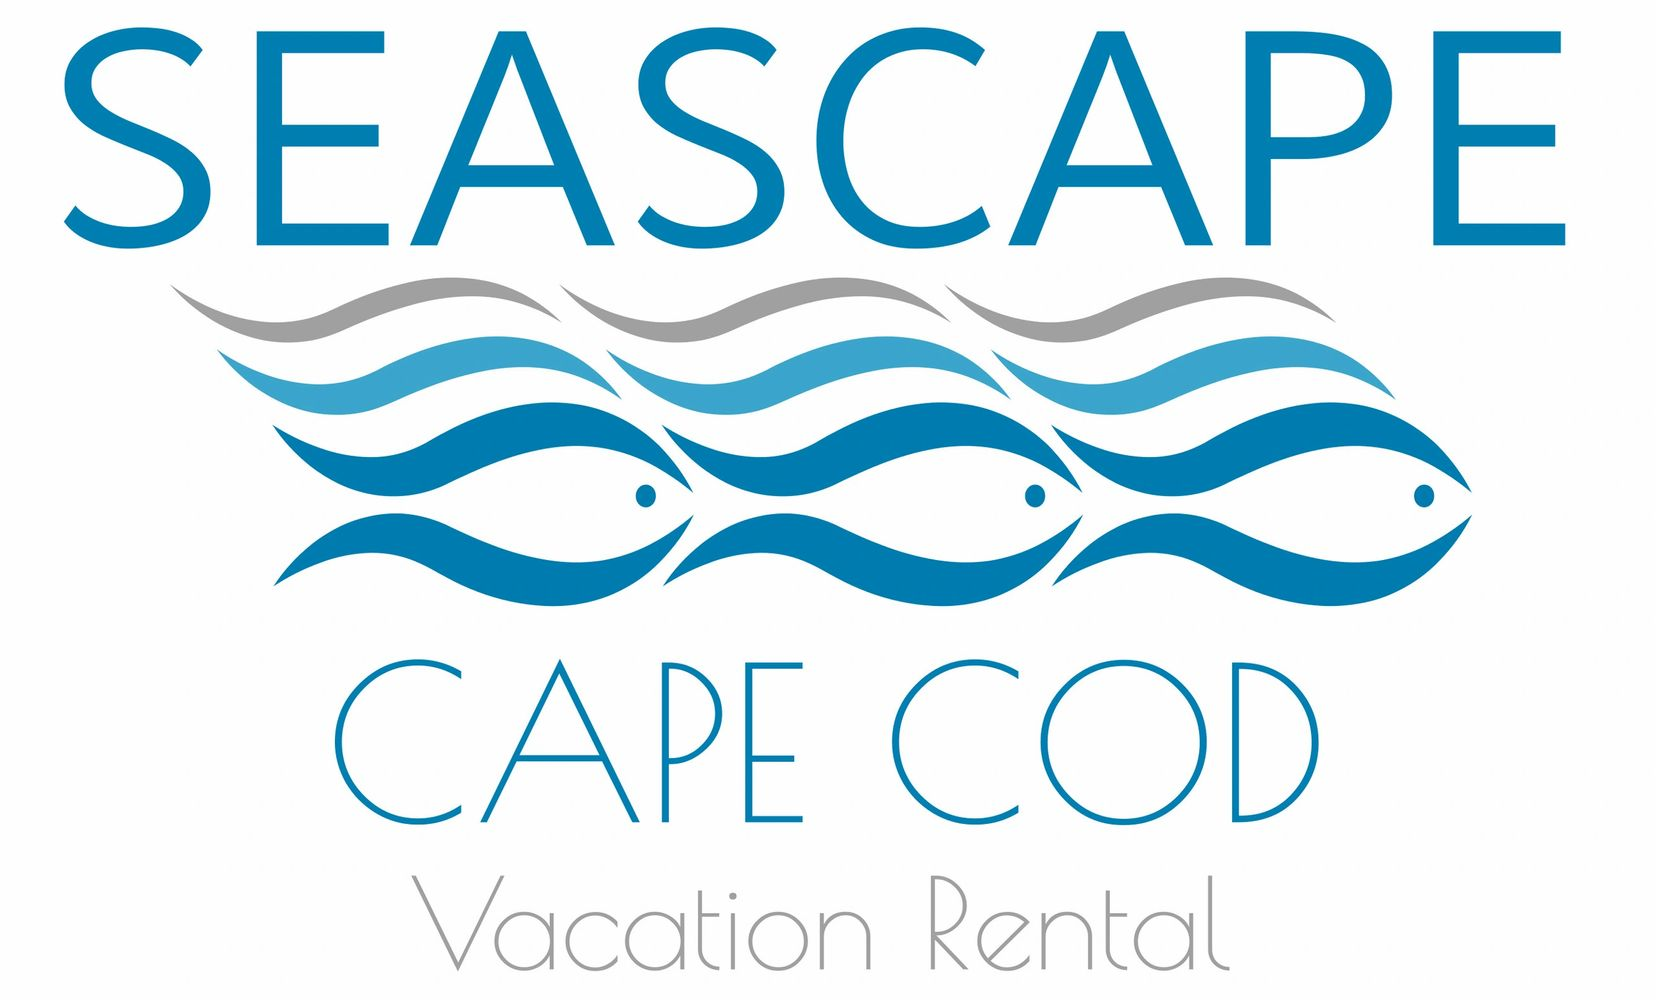 Cape Cod Vacation Rental Dennis Port Massachusetts Mid Cape Beach House Vacation Rental